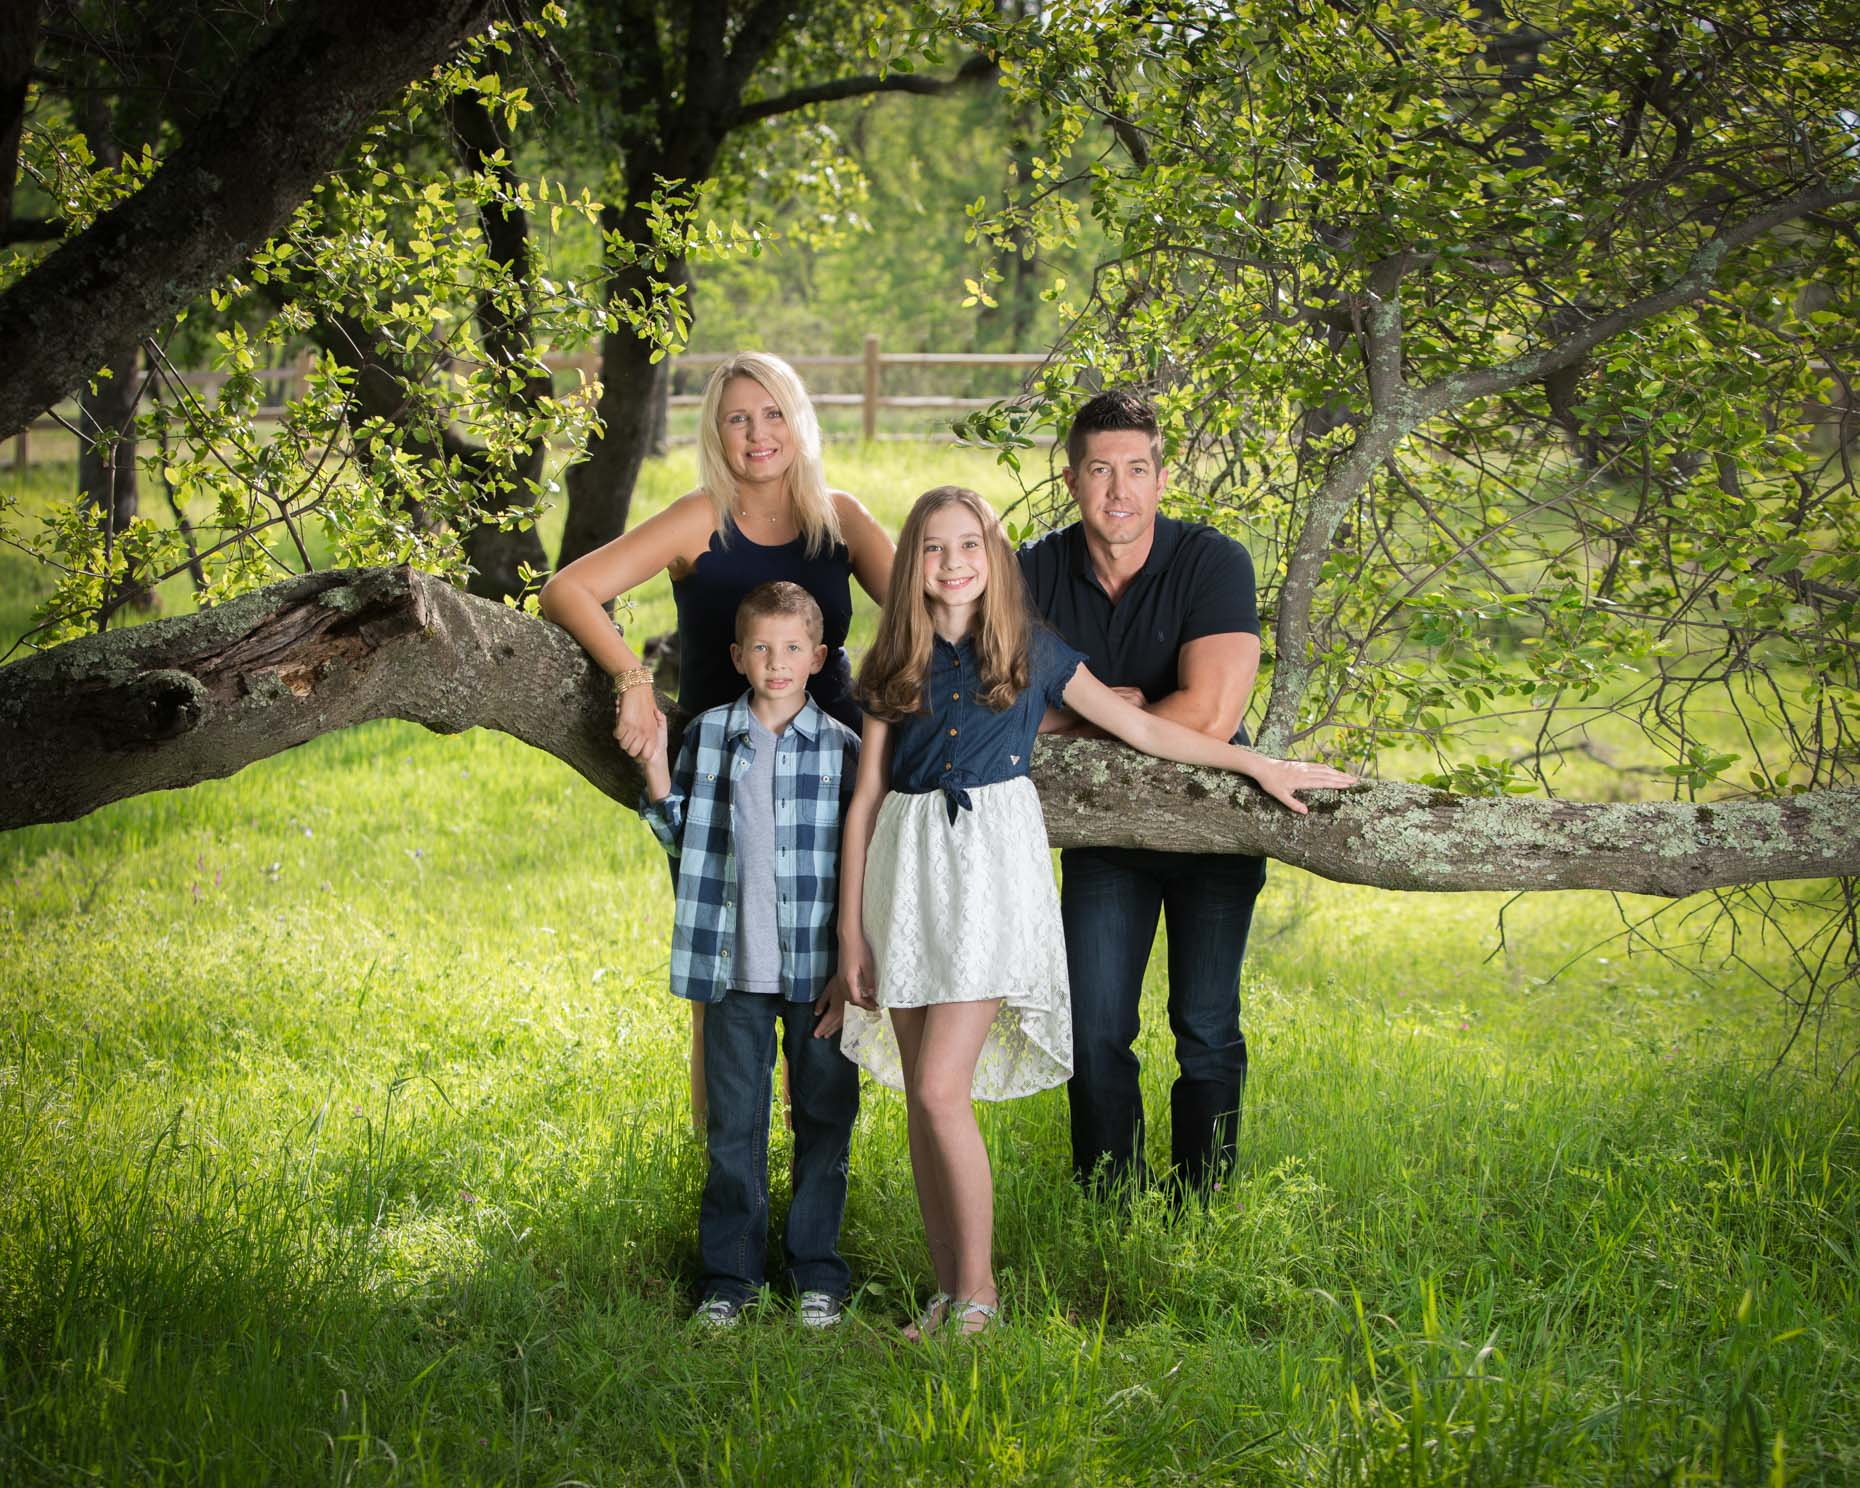 20160402_Heather_Pollet_Family0020-Edit